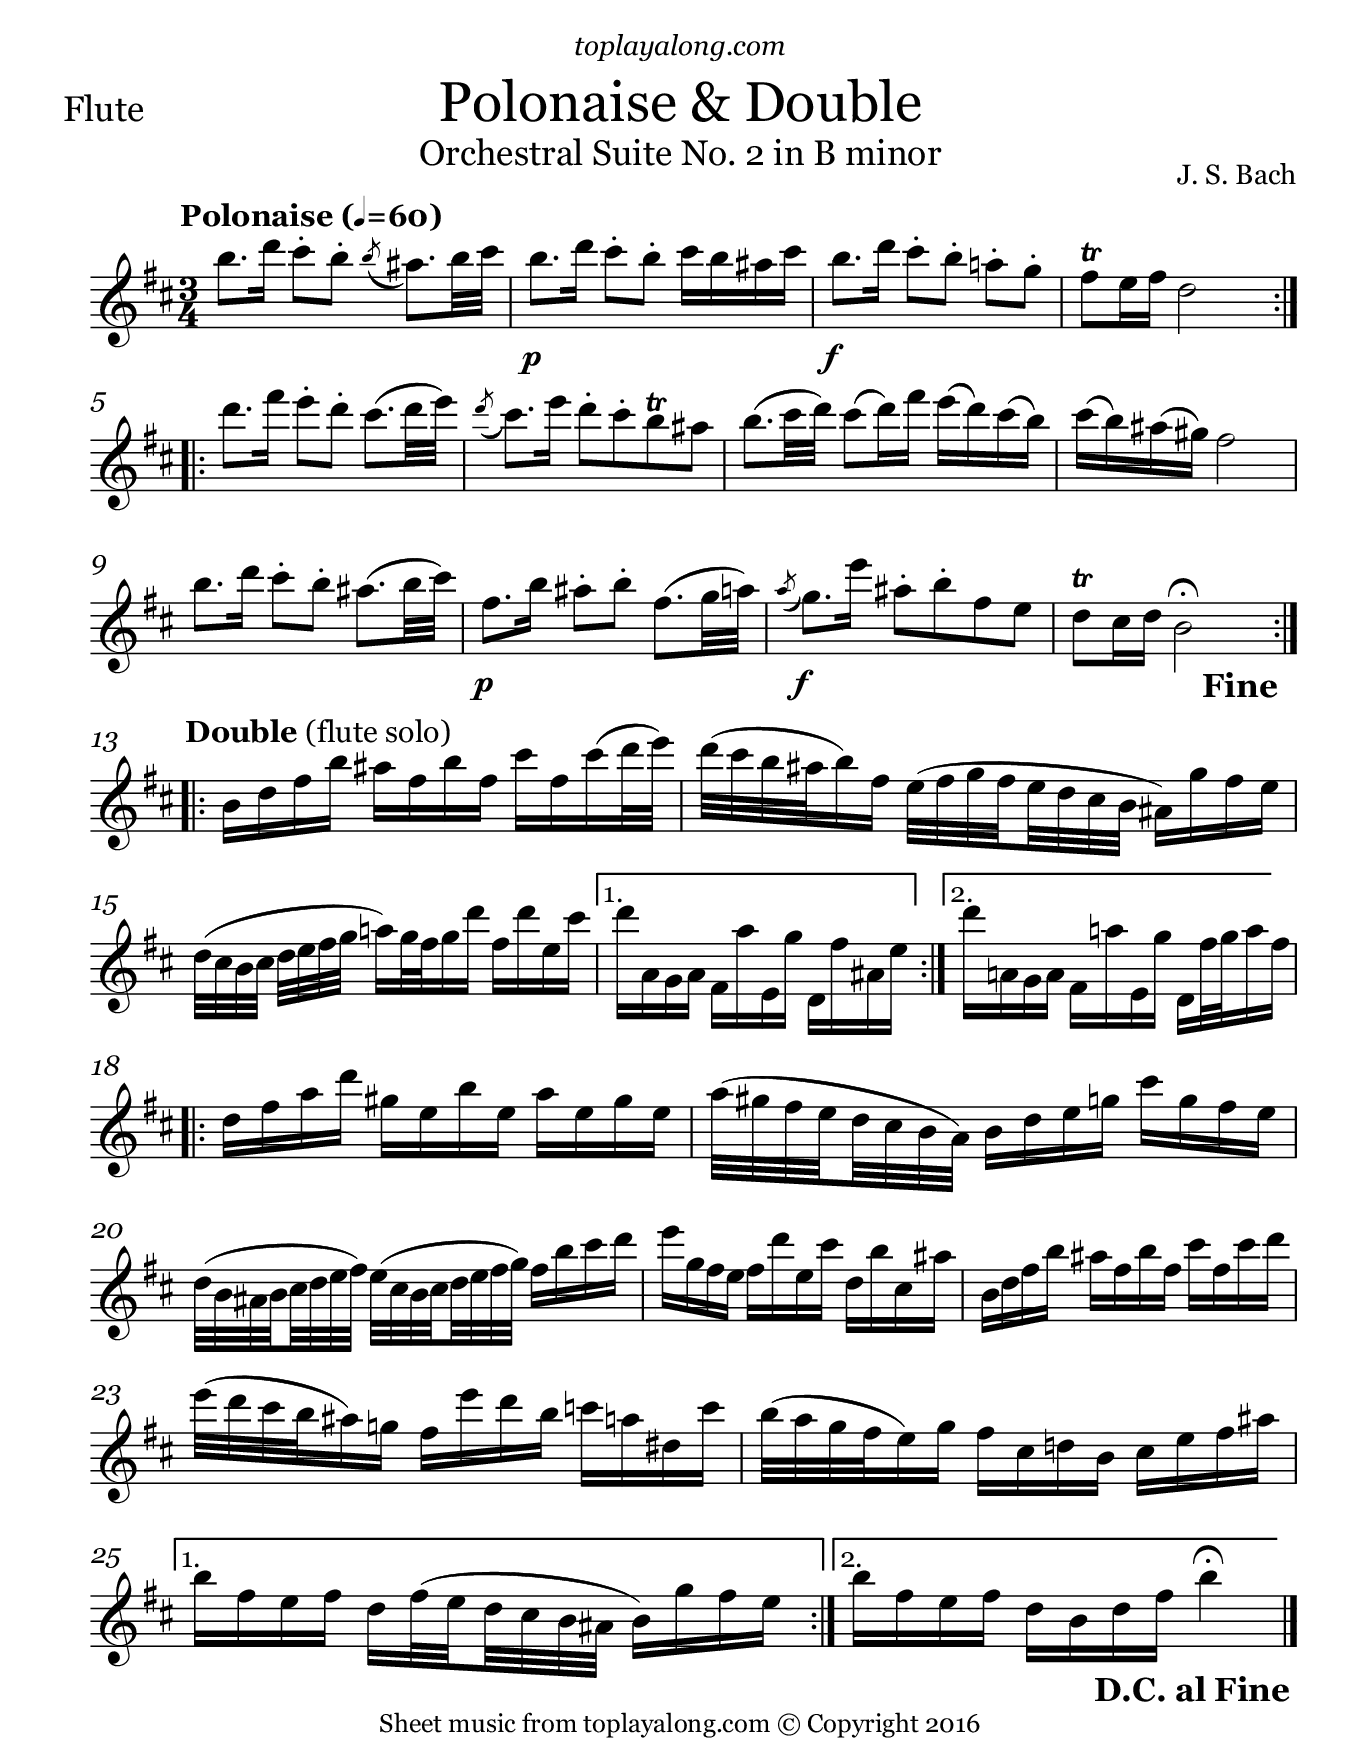 Orchestral Suite No  2 (V  Polonaise & Double) by J  S  Bach  Free